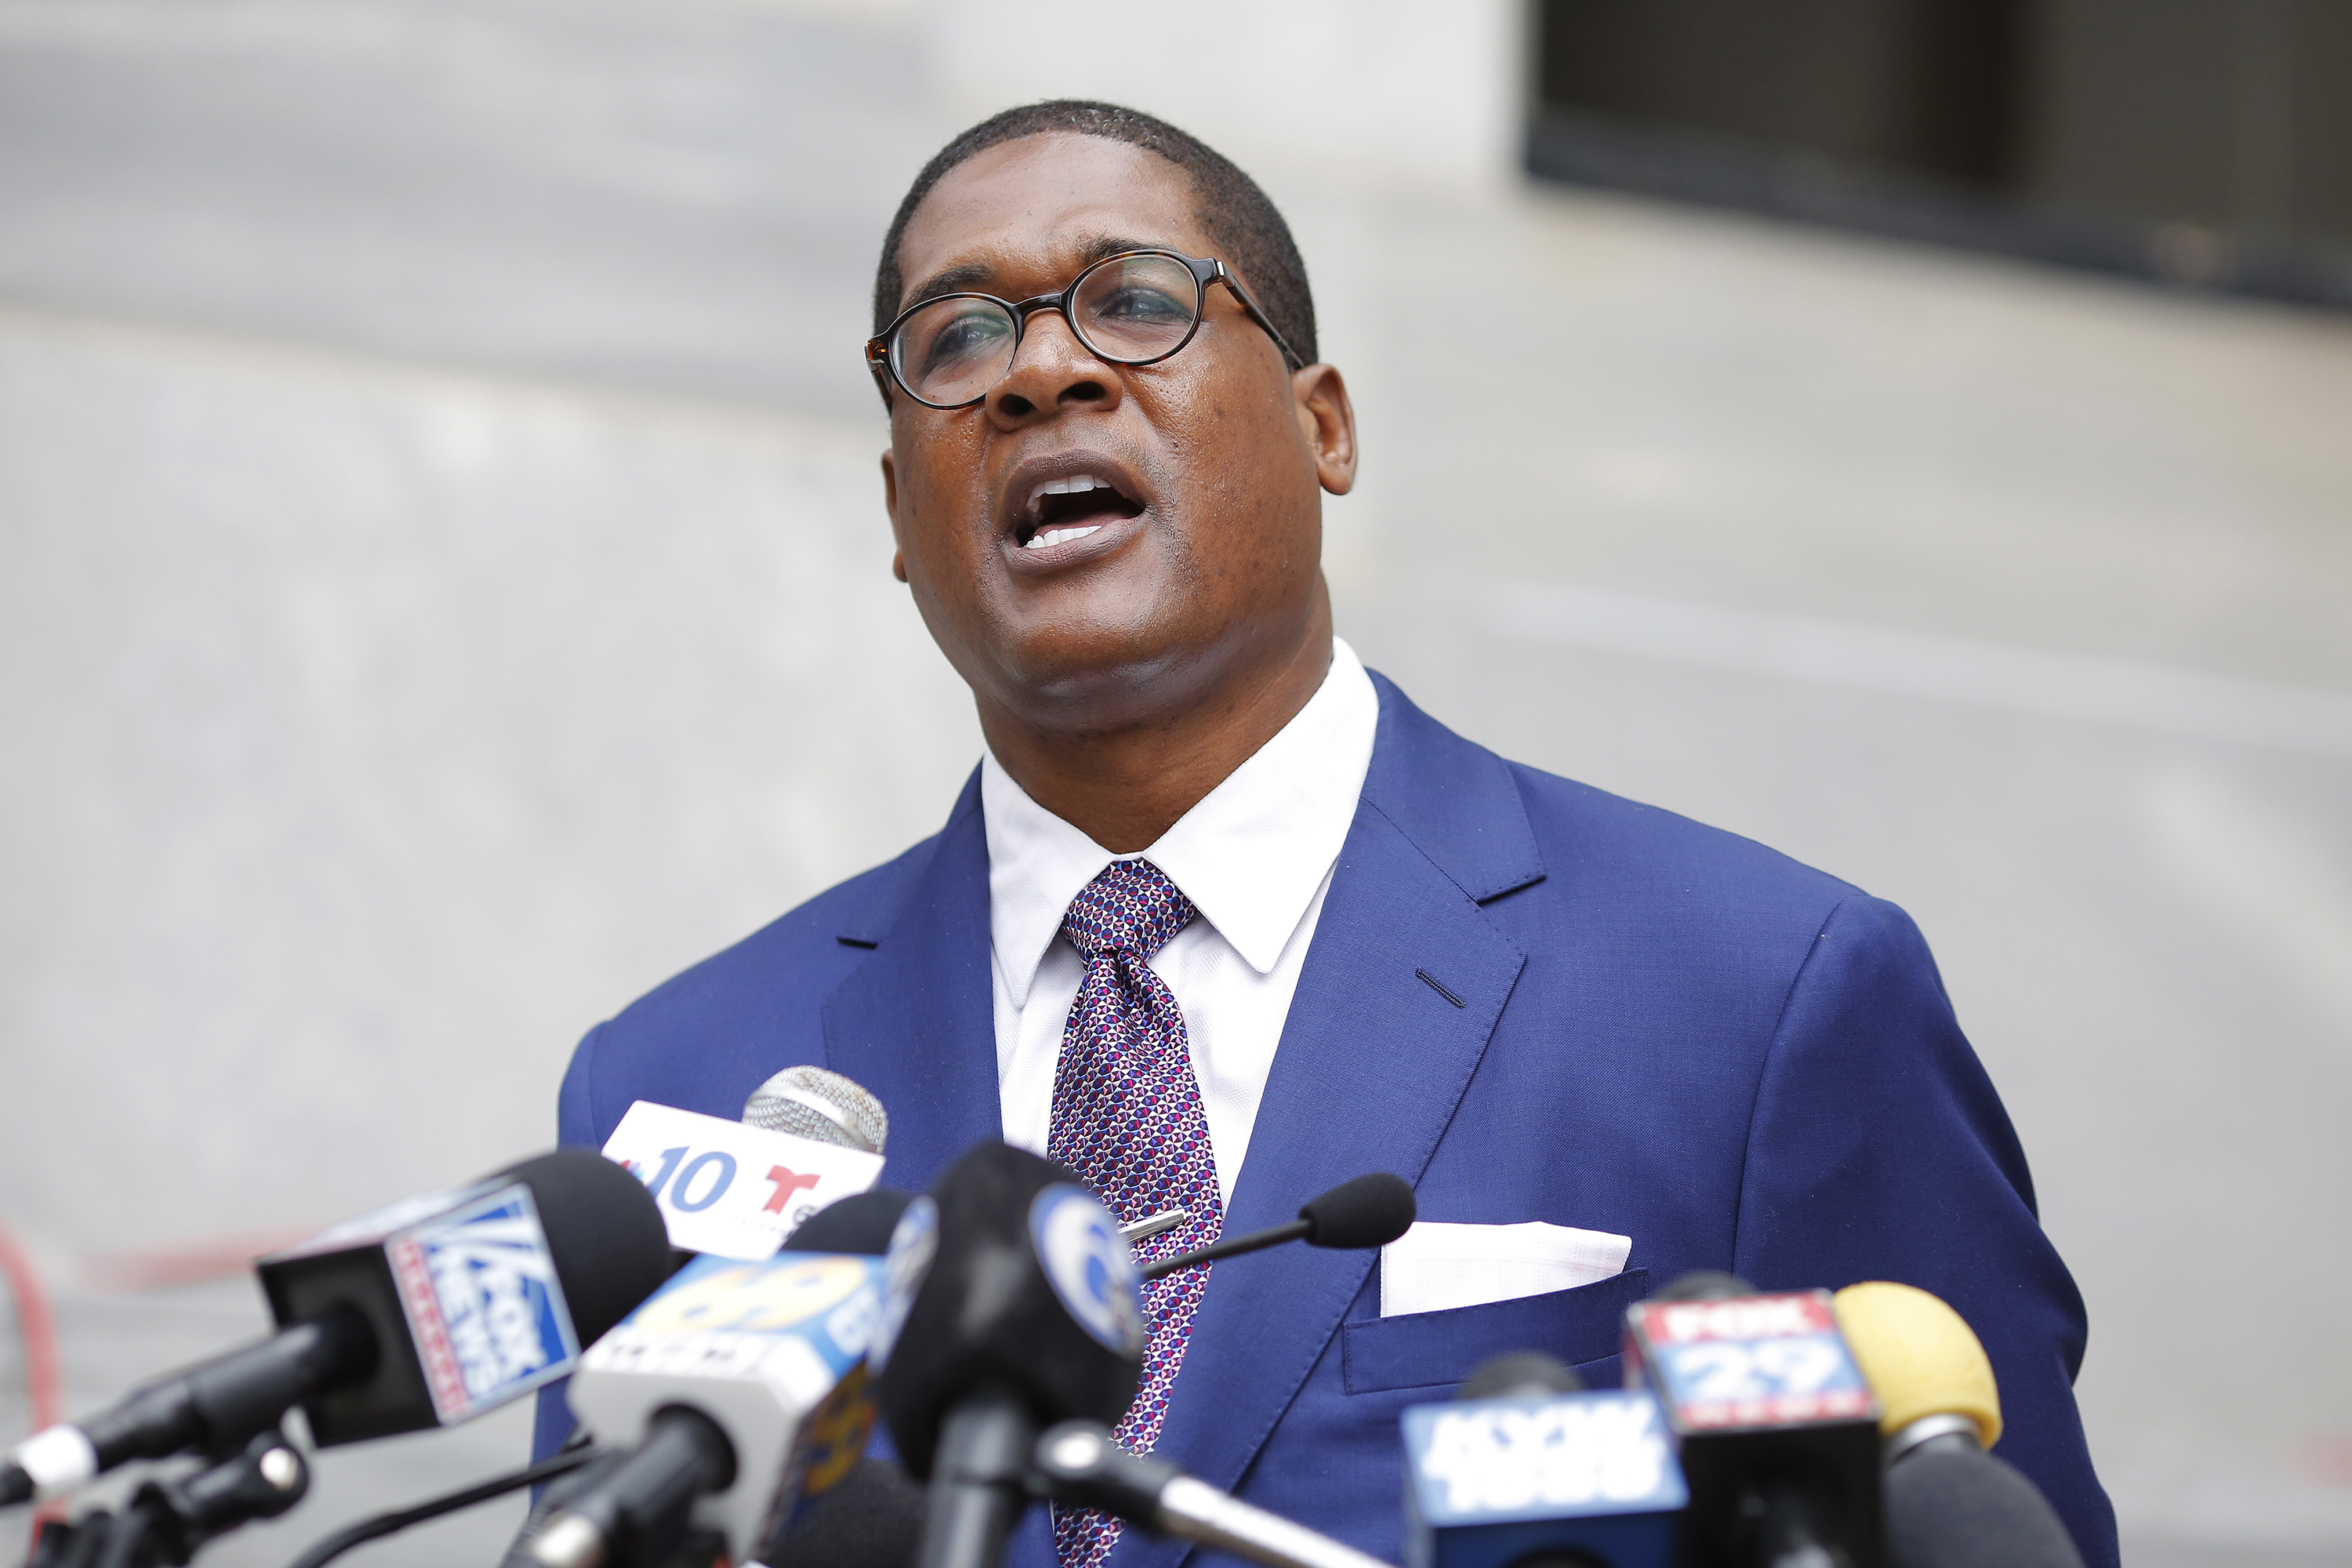 Andrew Wyatt, spokesman for Bill Cosby, speaks to the media after the defense's closing argument in the retrial of Cosby's sexual assault case on April 24, 2018.